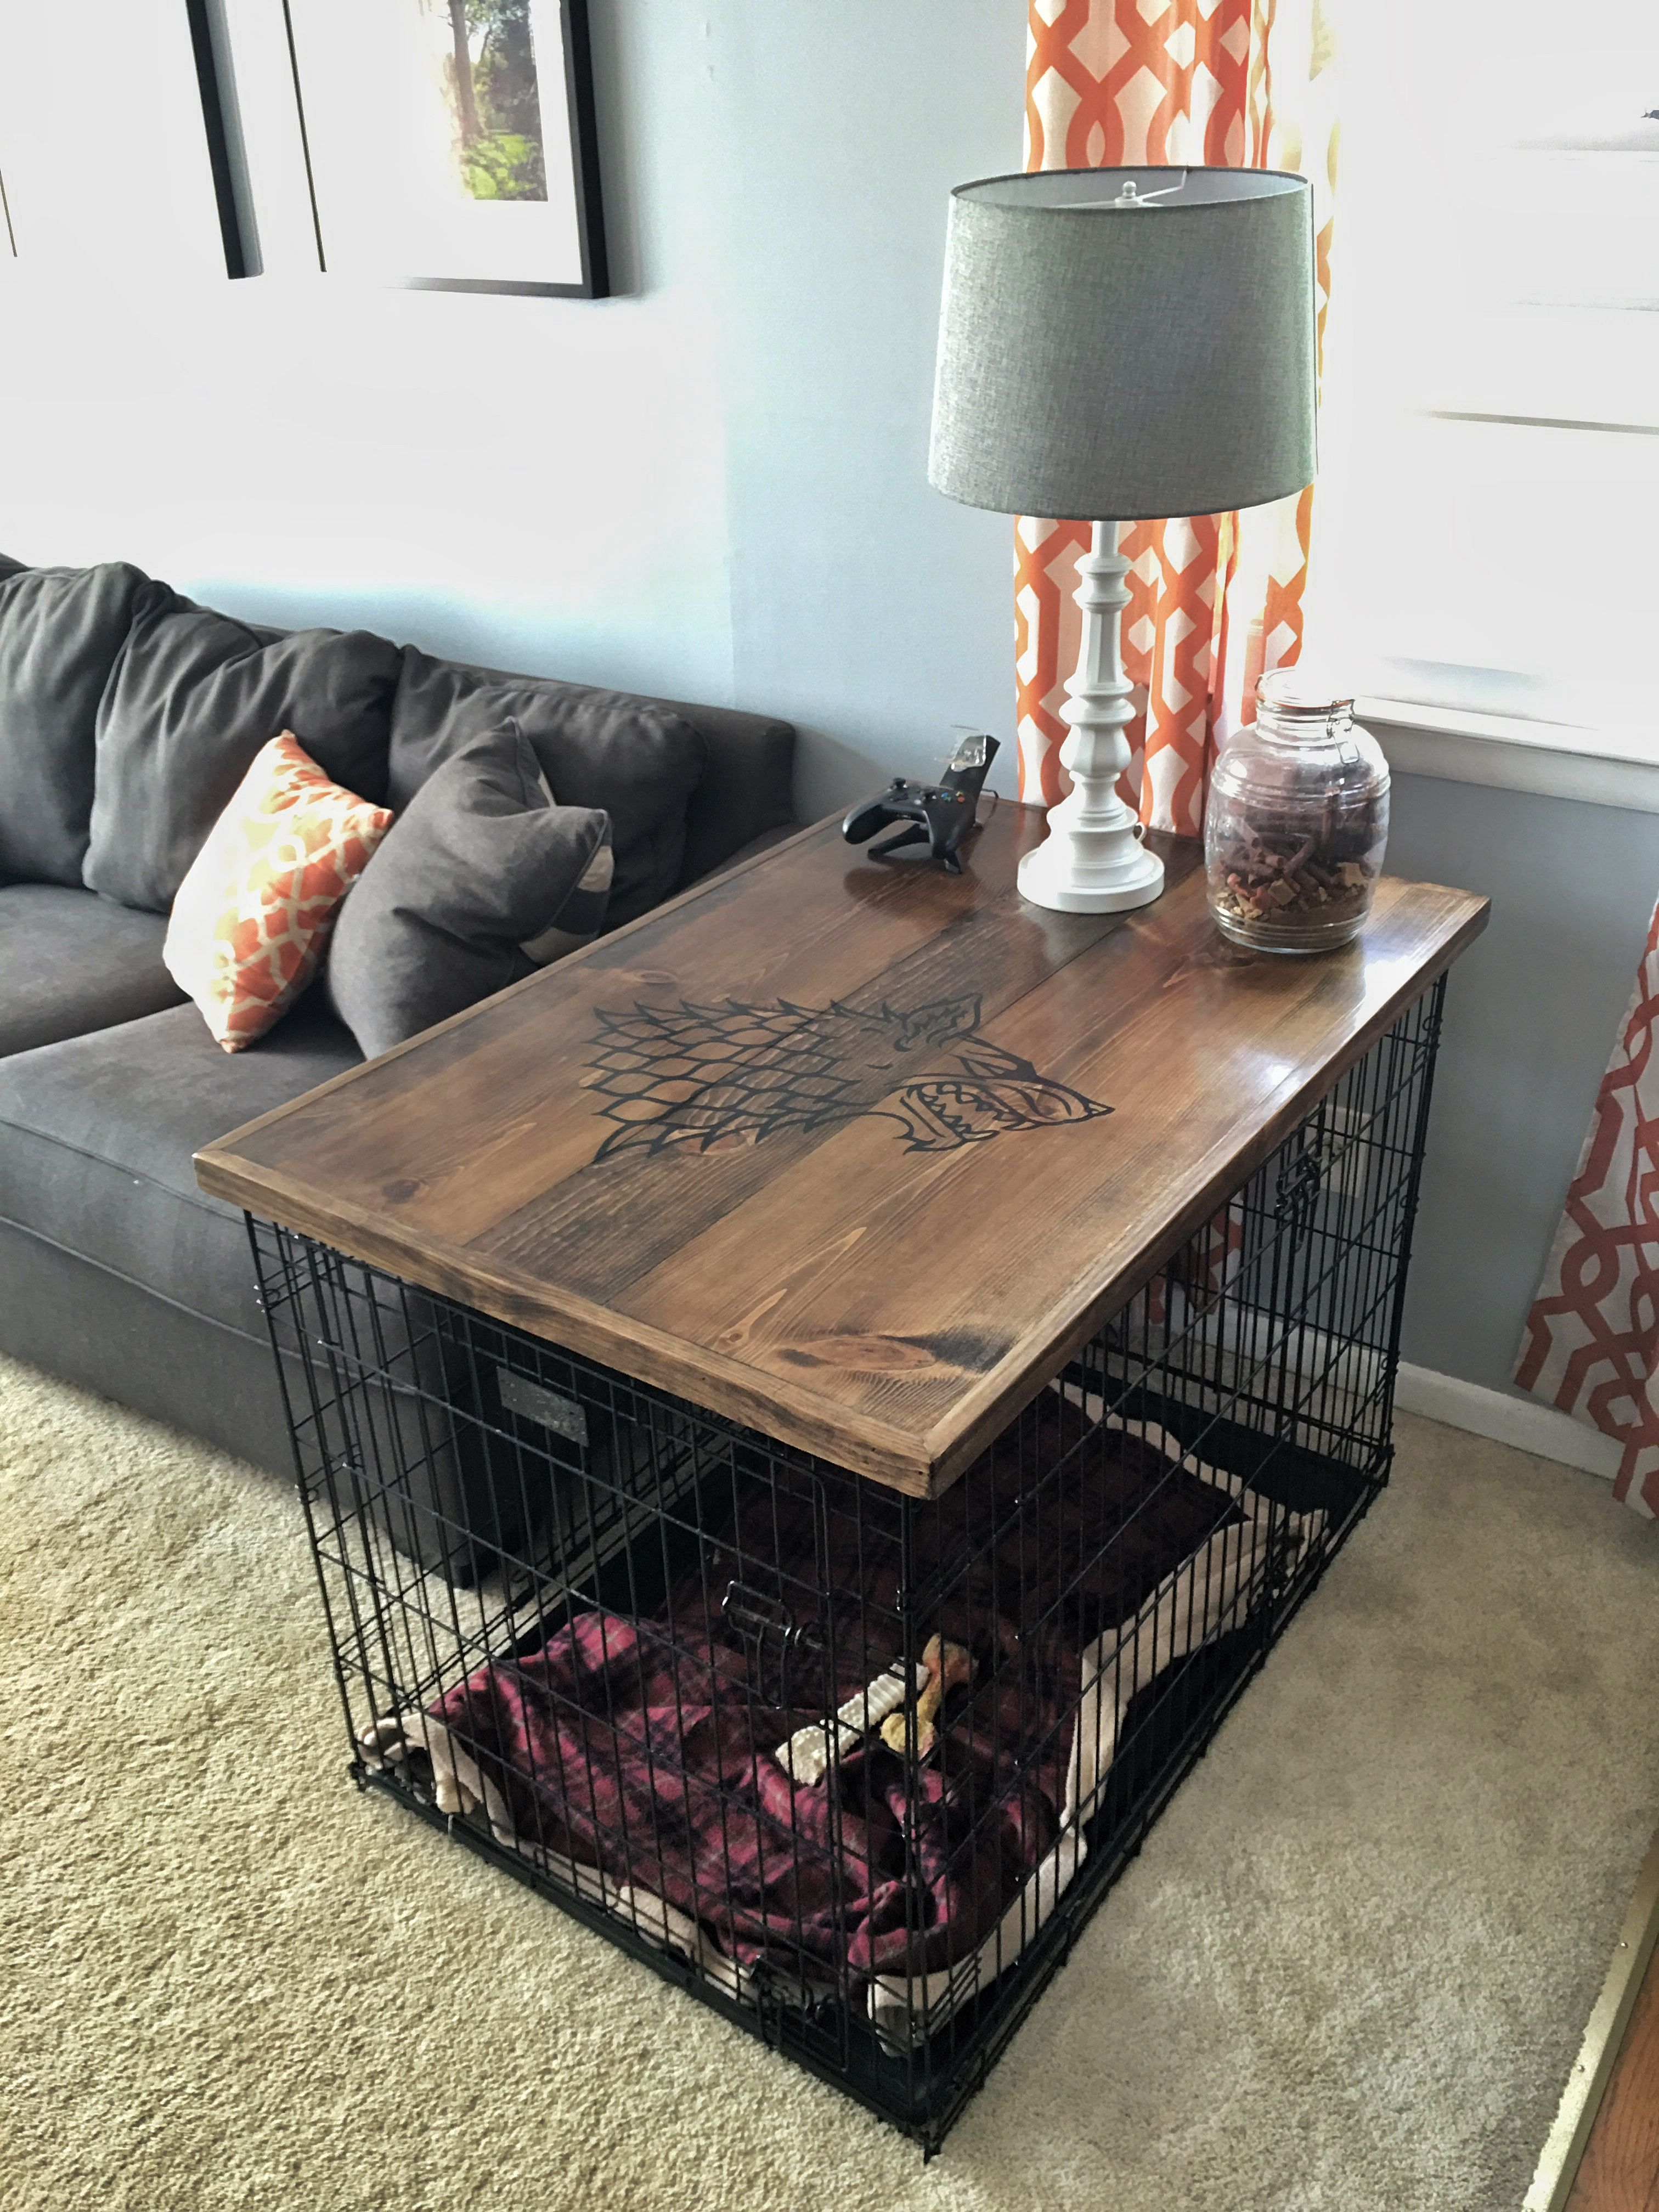 Direwolf dog crate table top dog crate table dog crate and crates direwolf dog crate table top geotapseo Gallery